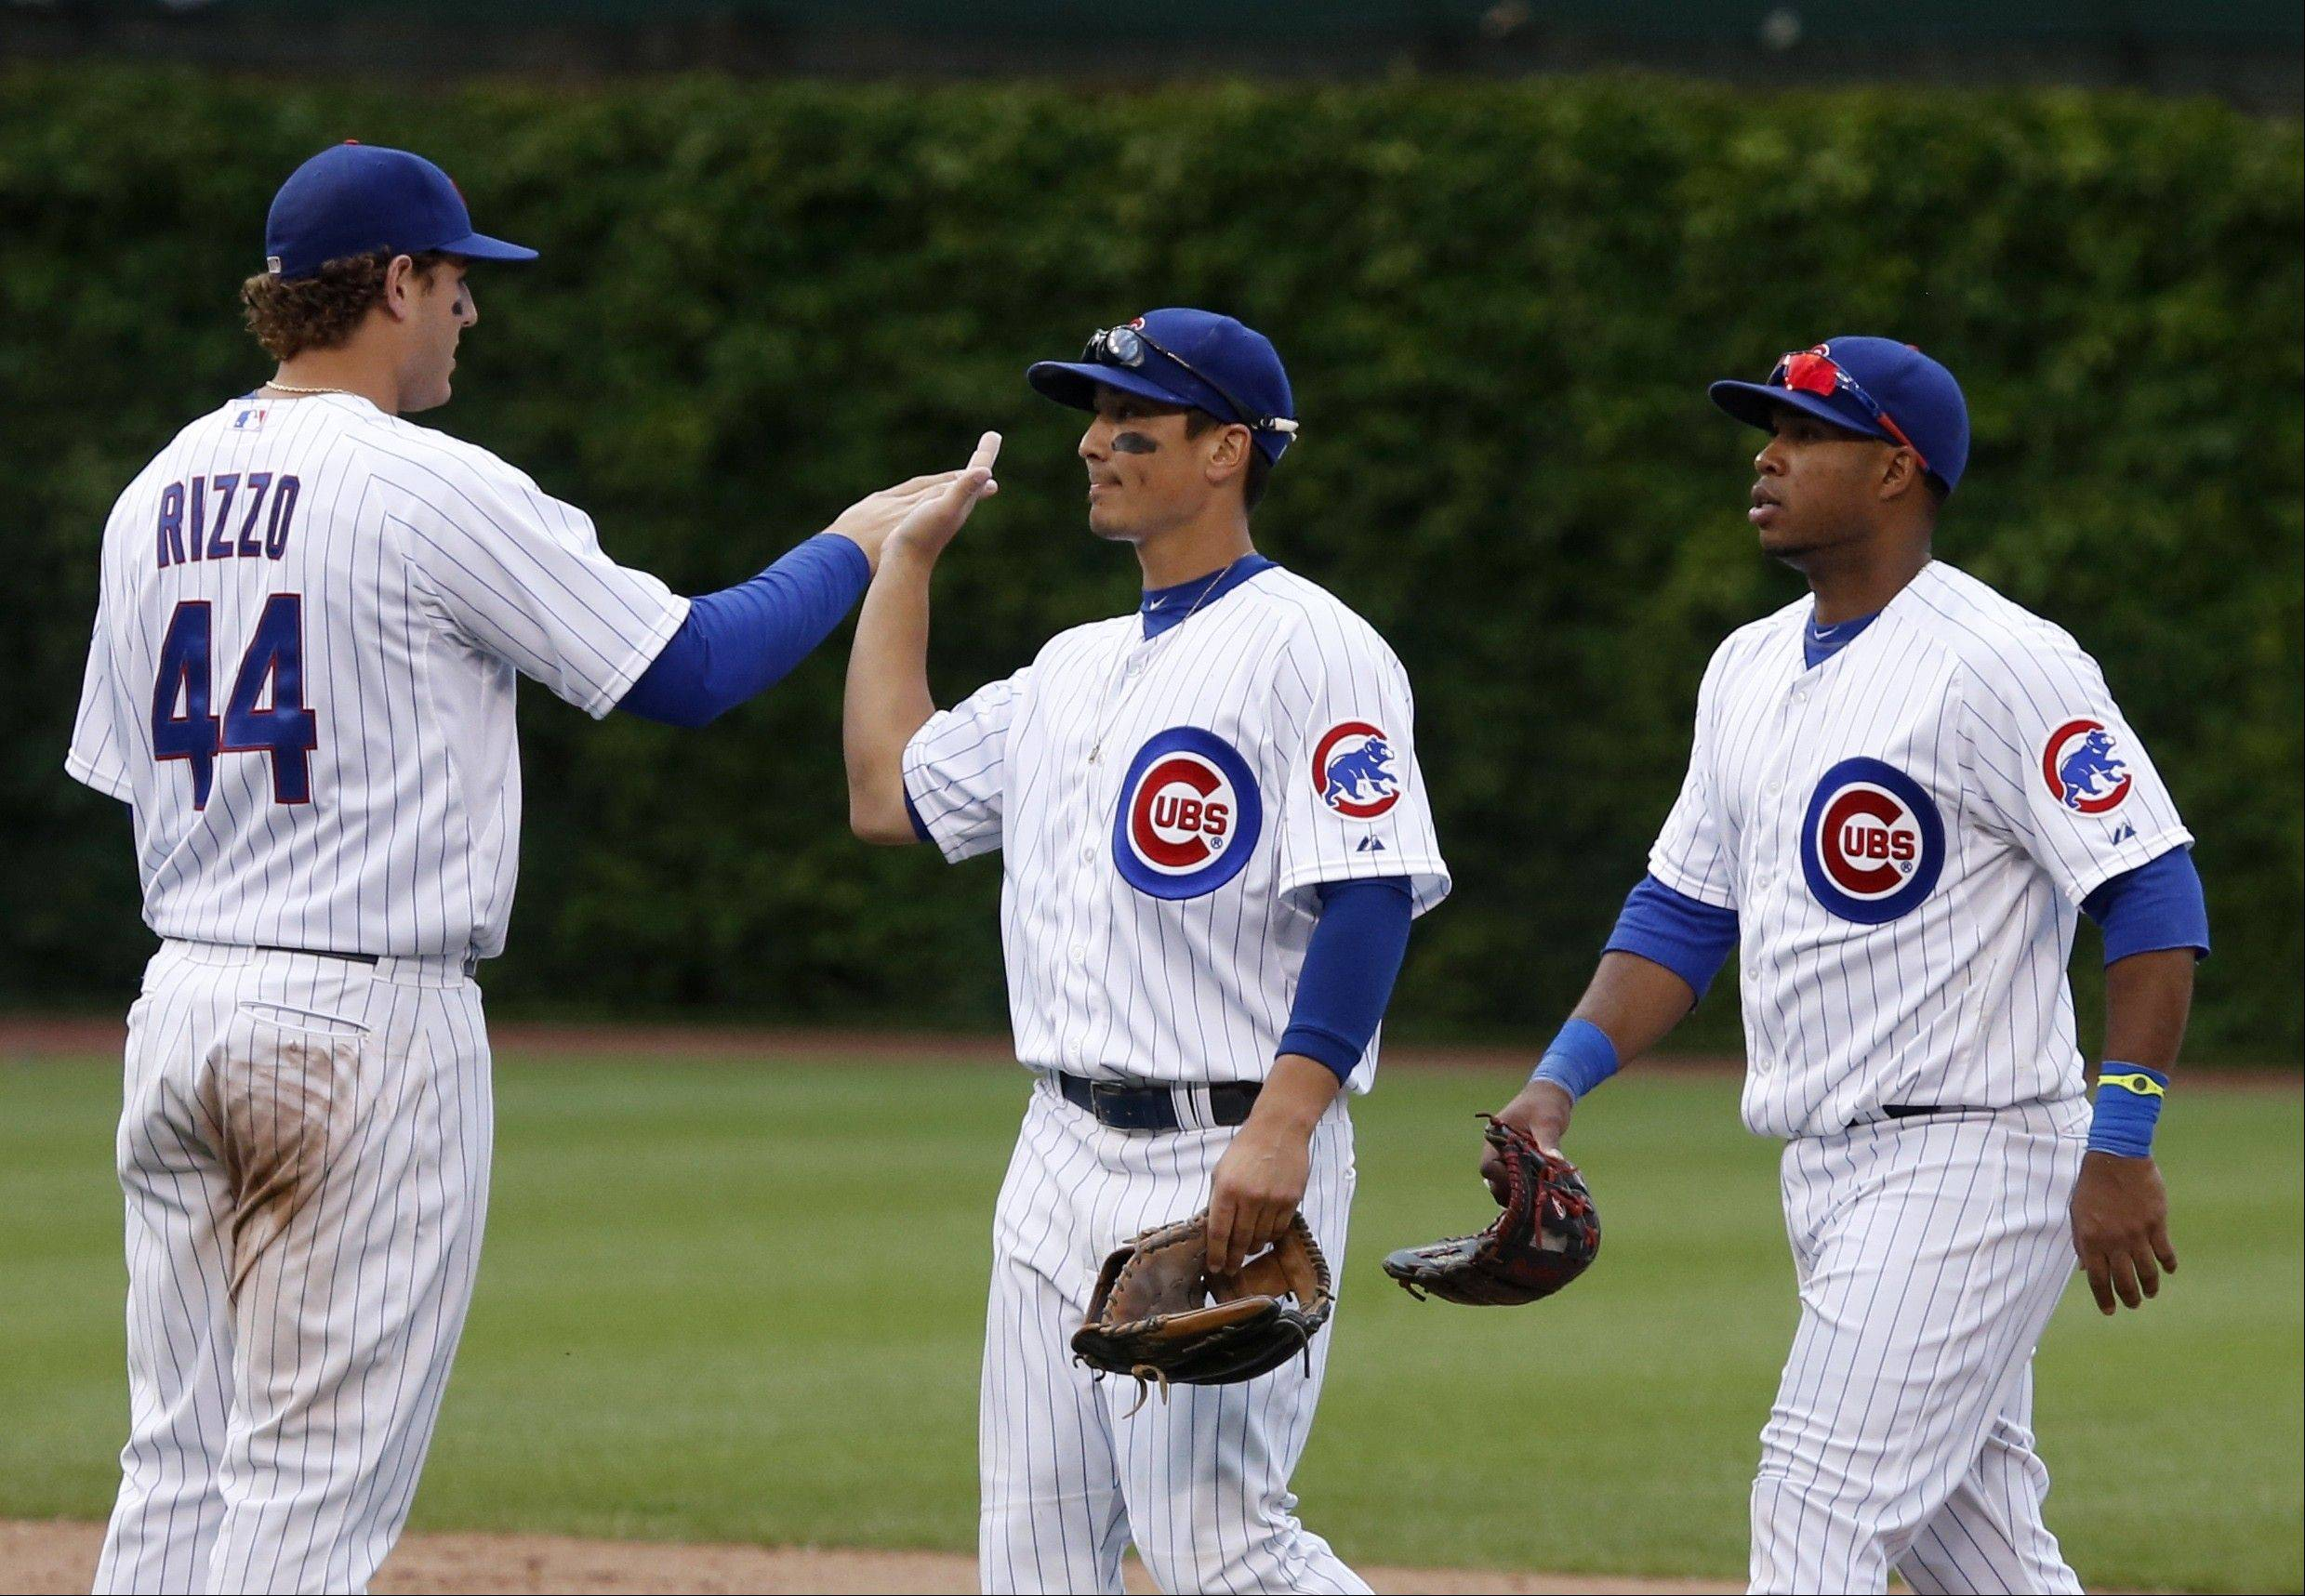 Chicago Cubs' Anthony Rizzo (44), Darwin Barney, center, and Luis Valbuena celebrate the Cubs' 8-3 win over the Chicago White Sox in an interleague baseball game Thursday, May 30, 2013, in Chicago.